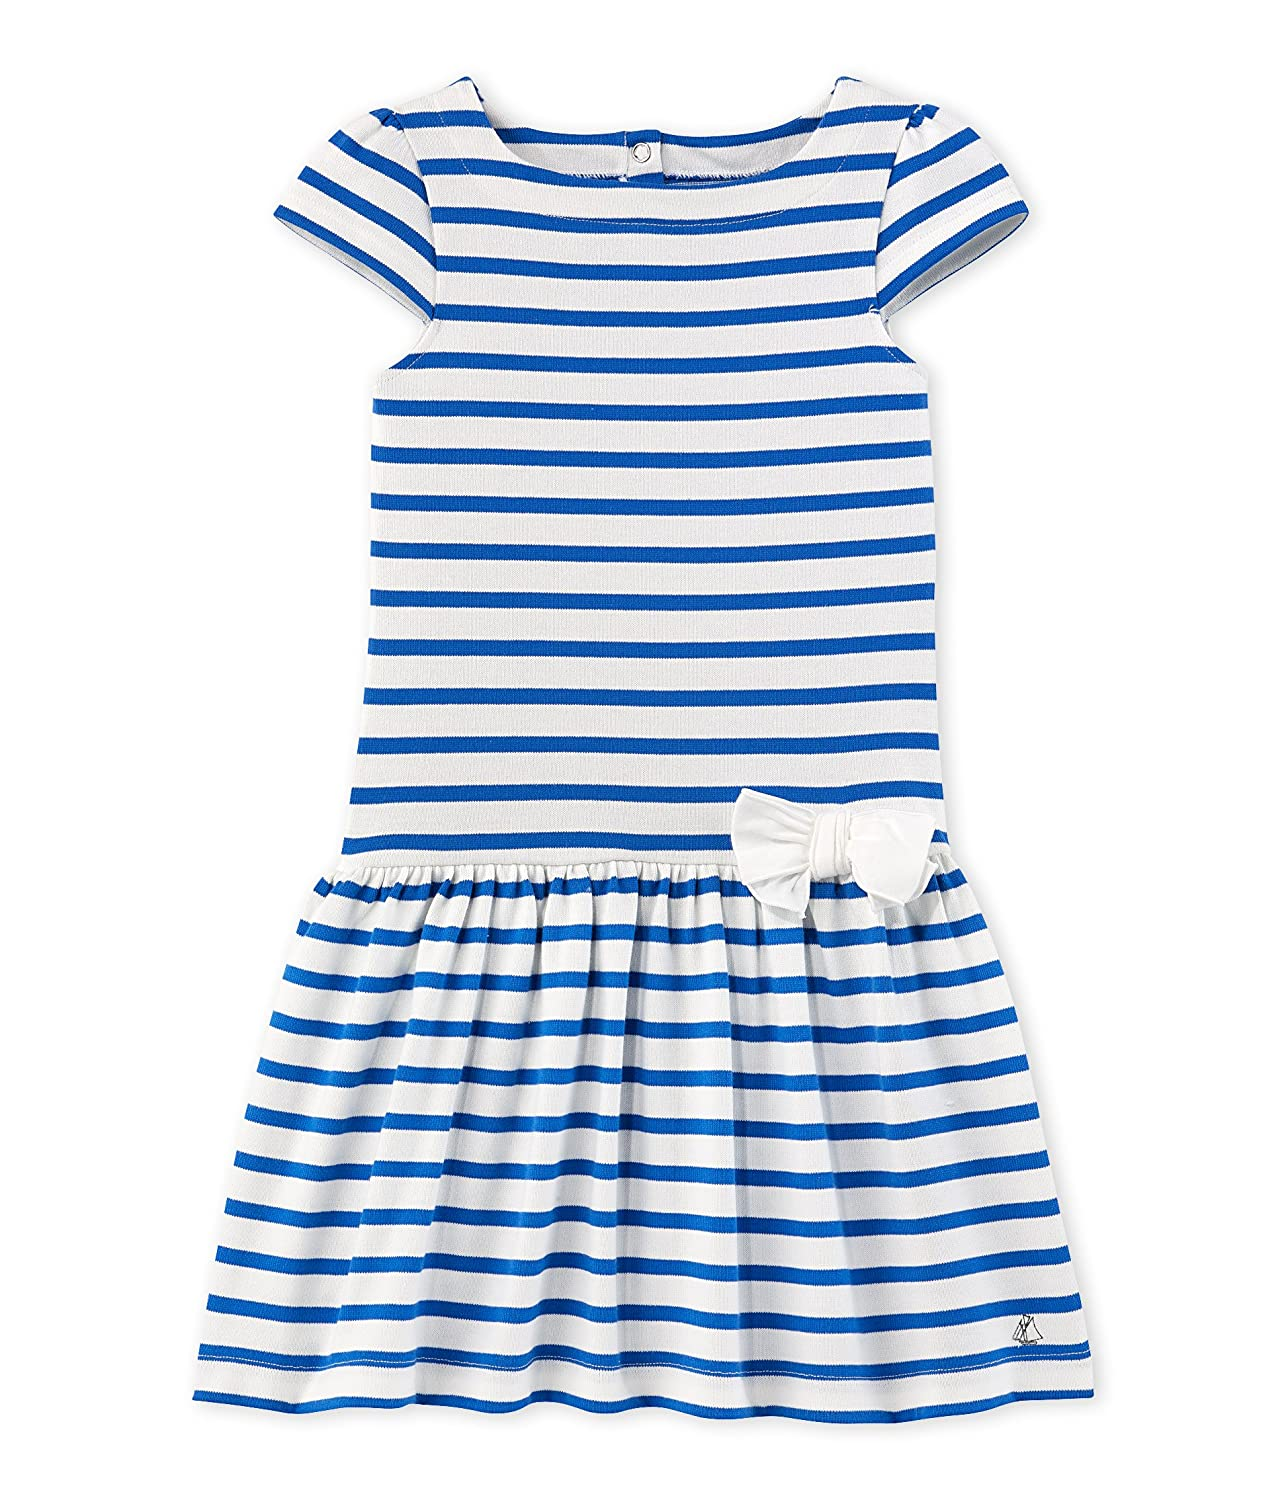 Petit Bateau Girl's Fathilda Dress Multicoloured (Lait/Delft) 5 Years 2269538